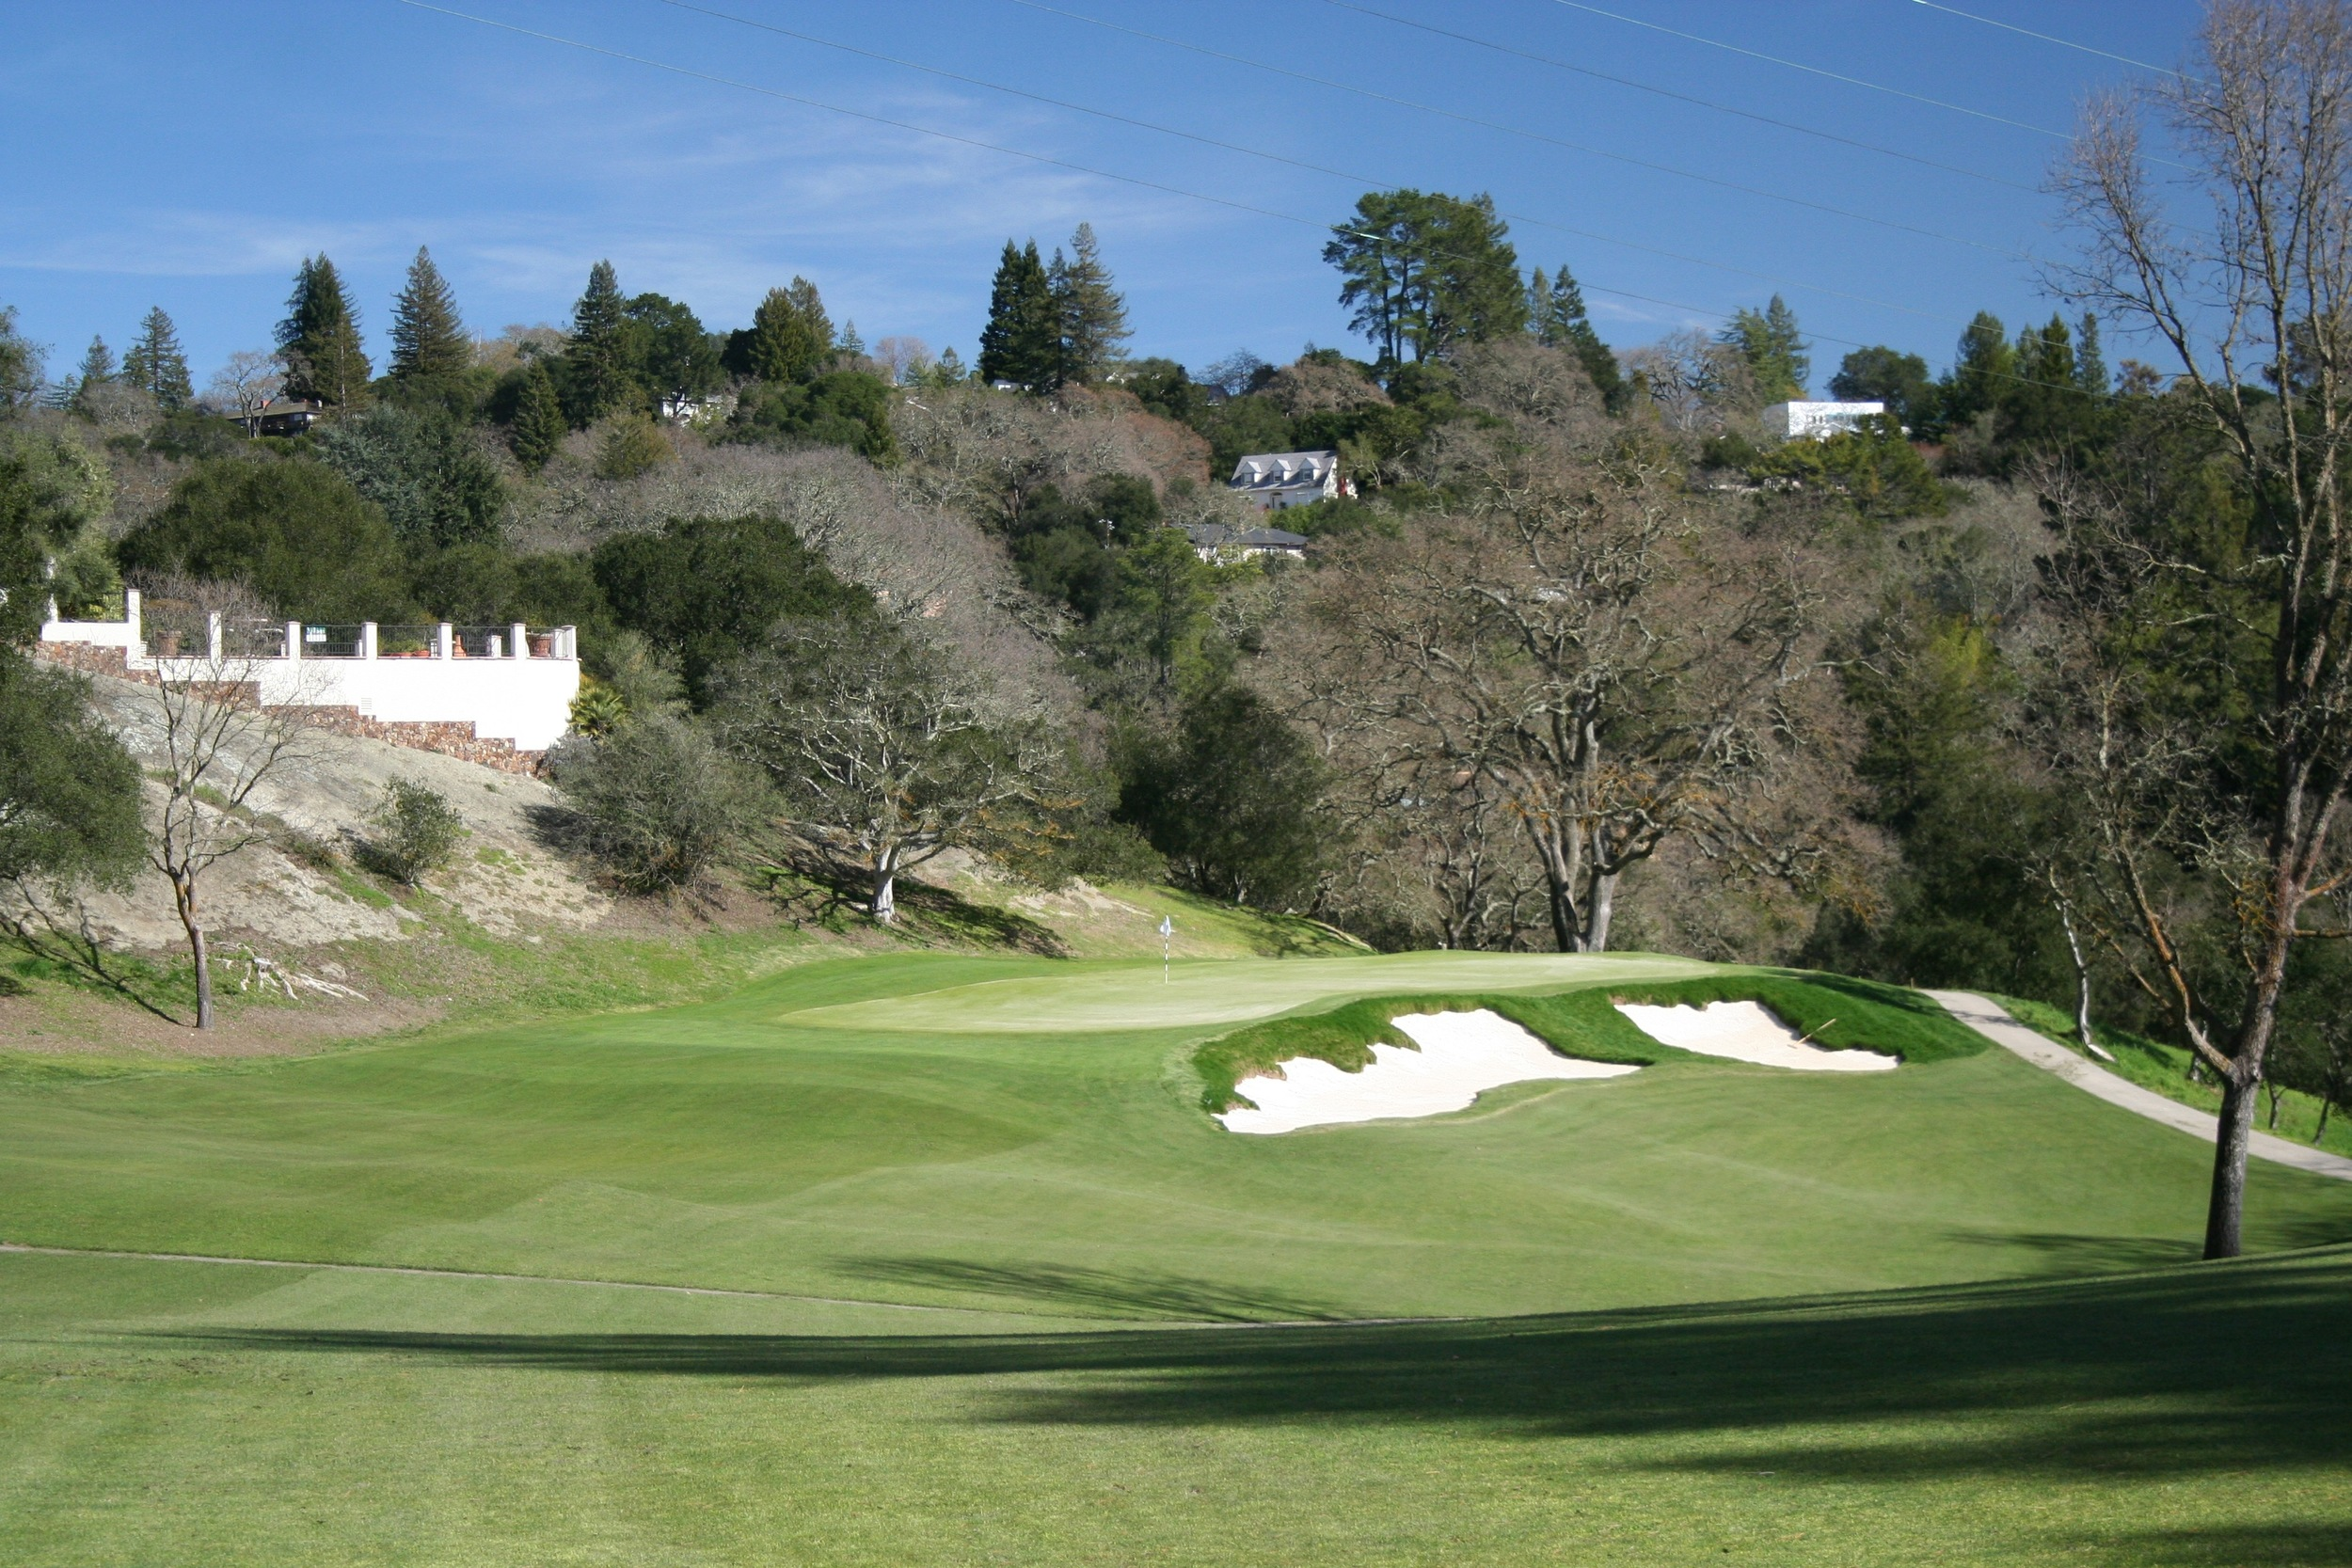 hochstein-design-orinda-cc-beforeafter-hole-4-6.jpg